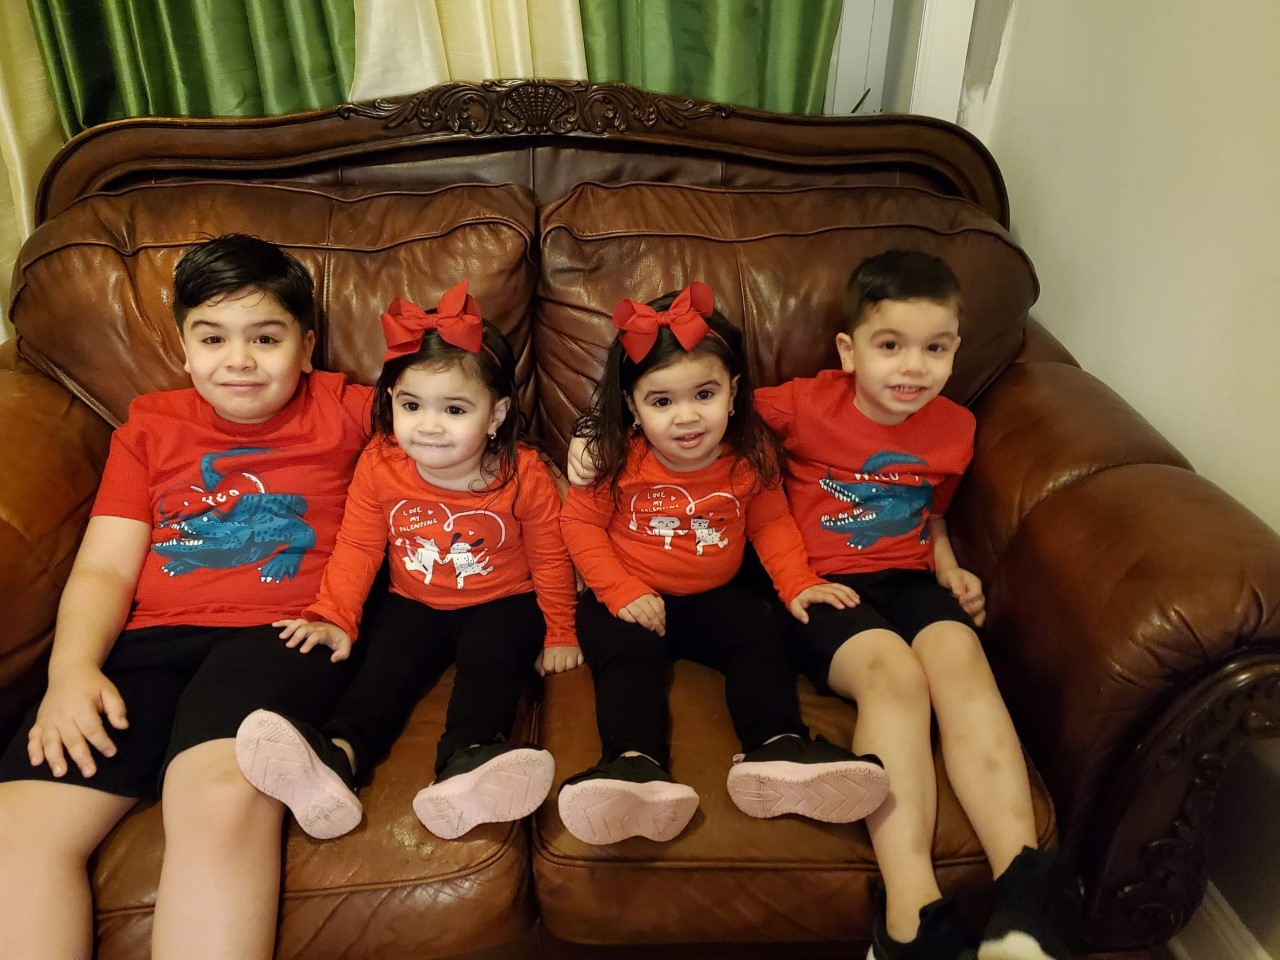 Twins and brothers wearing red.